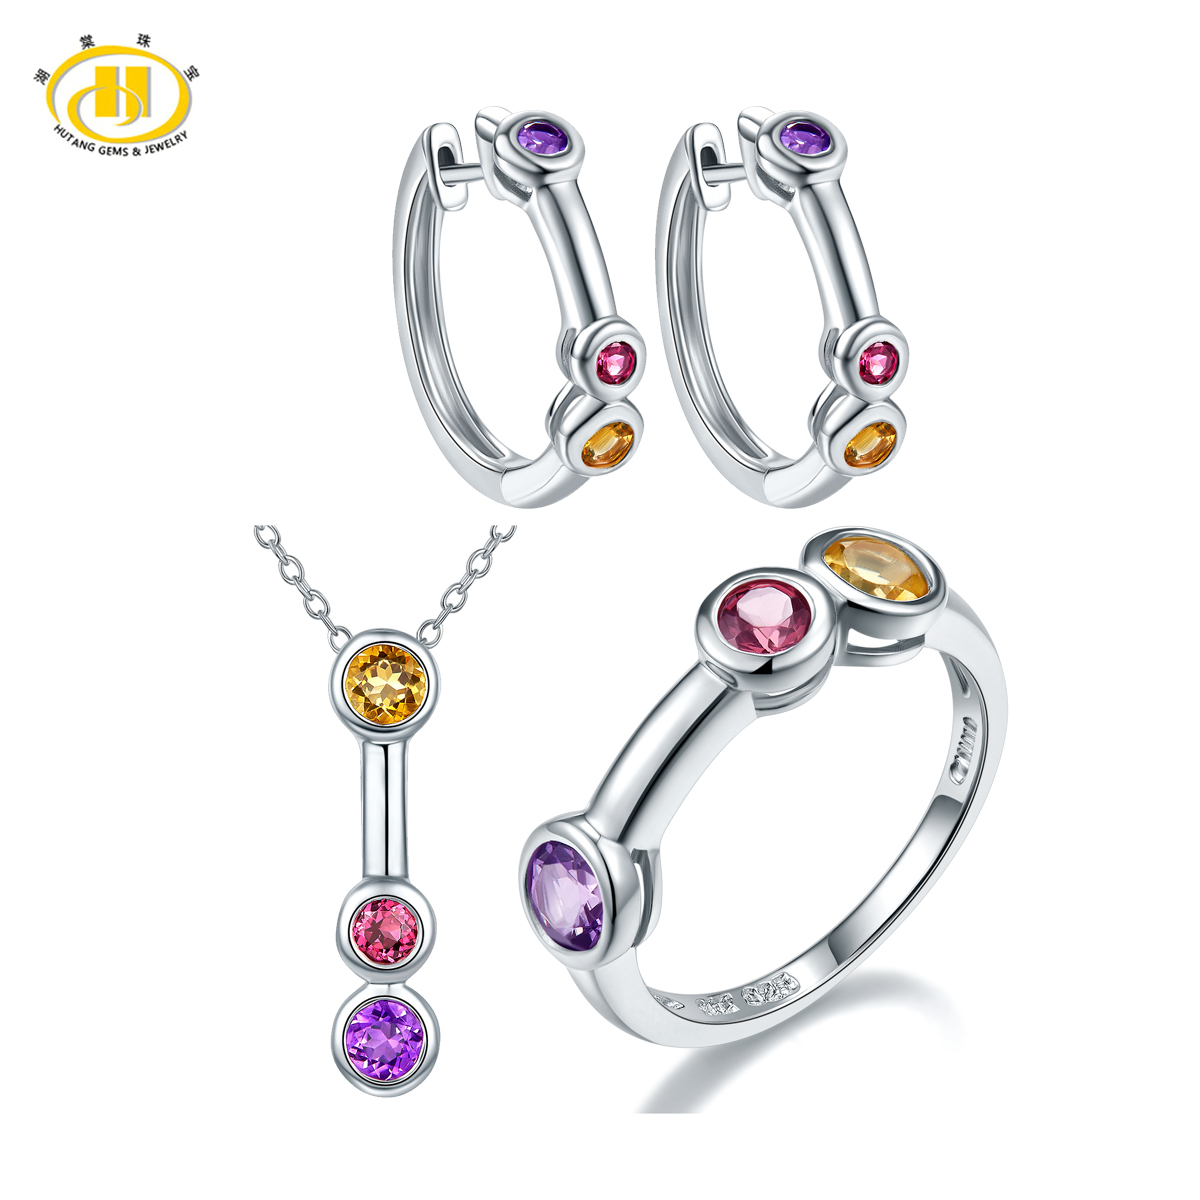 купить Hutang 3-stone Classic Multi-color Gemstone Jewelry Sets for Women Solid 925 Sterling Silver Ring Pendant Earrings Stylish Style онлайн